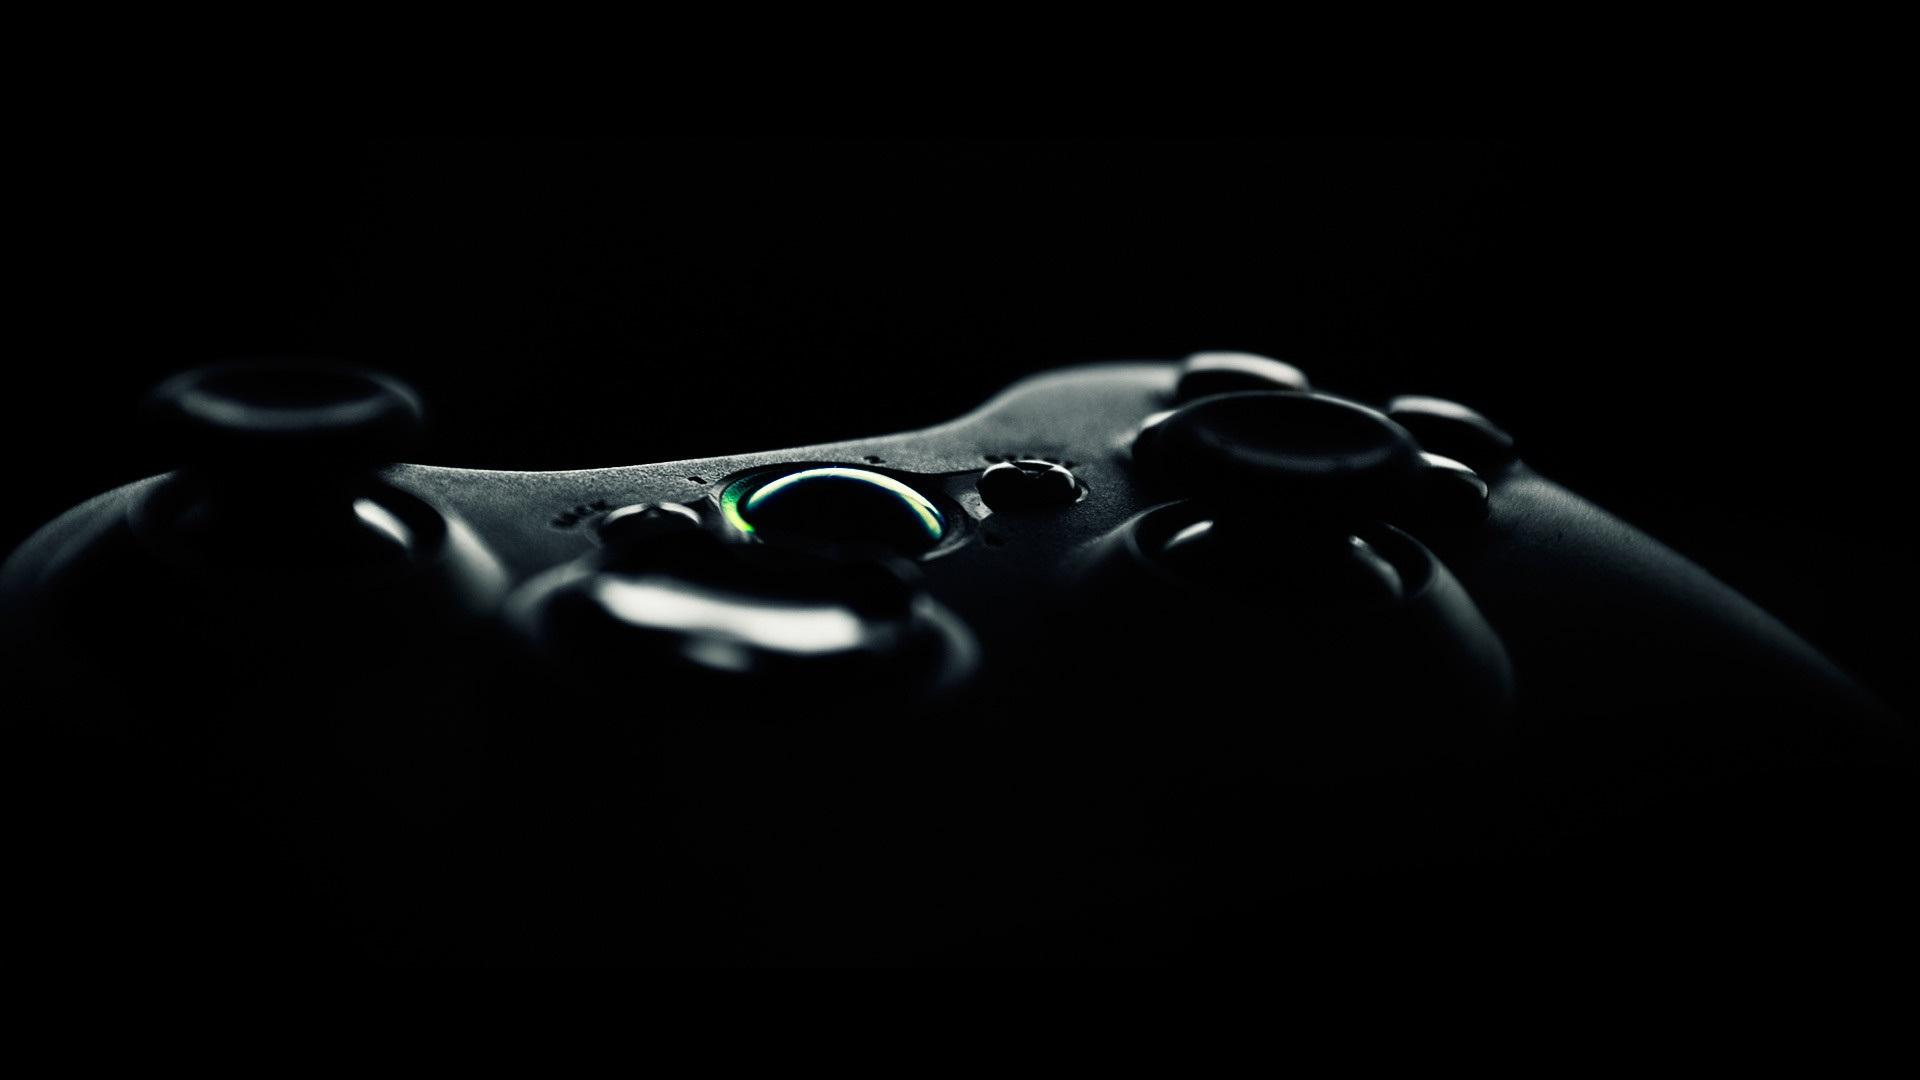 Video Game Controller Wallpapers Free Download > SubWallpapers